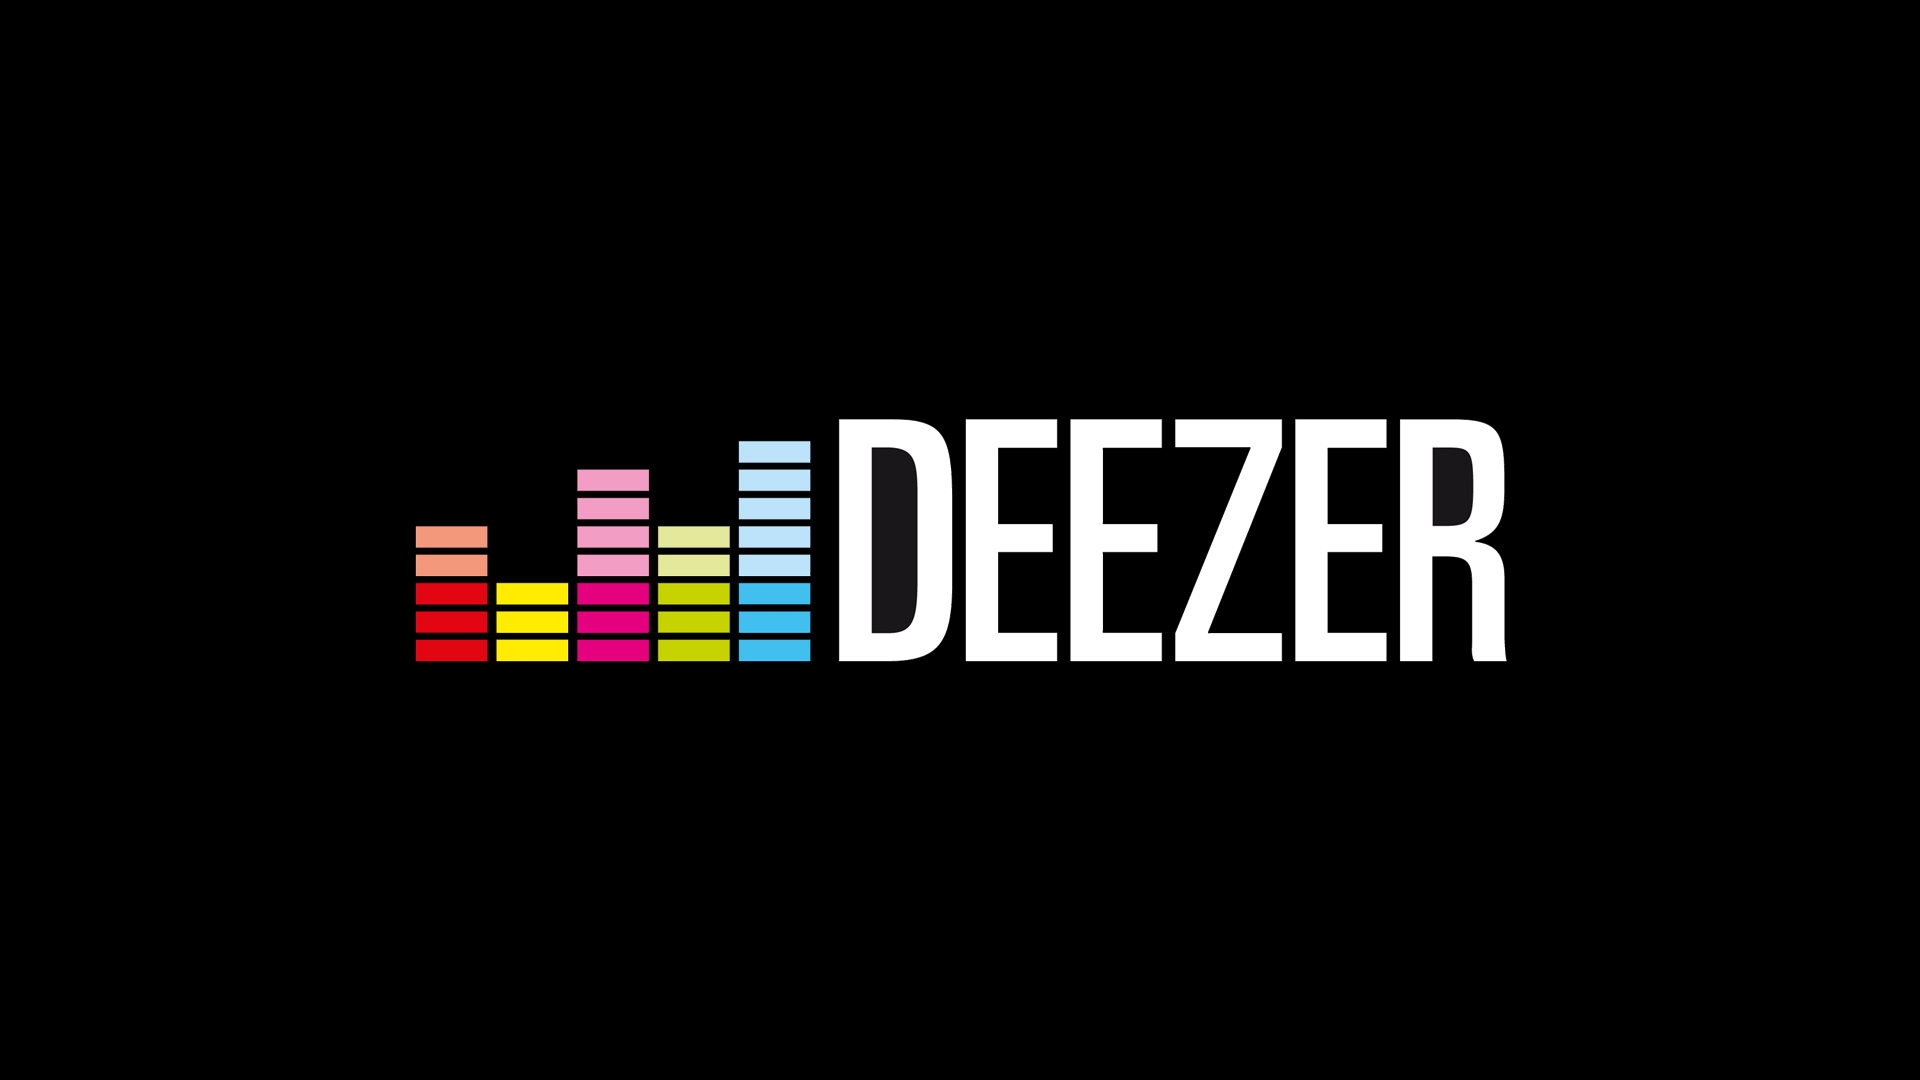 Deezer streams music promotion